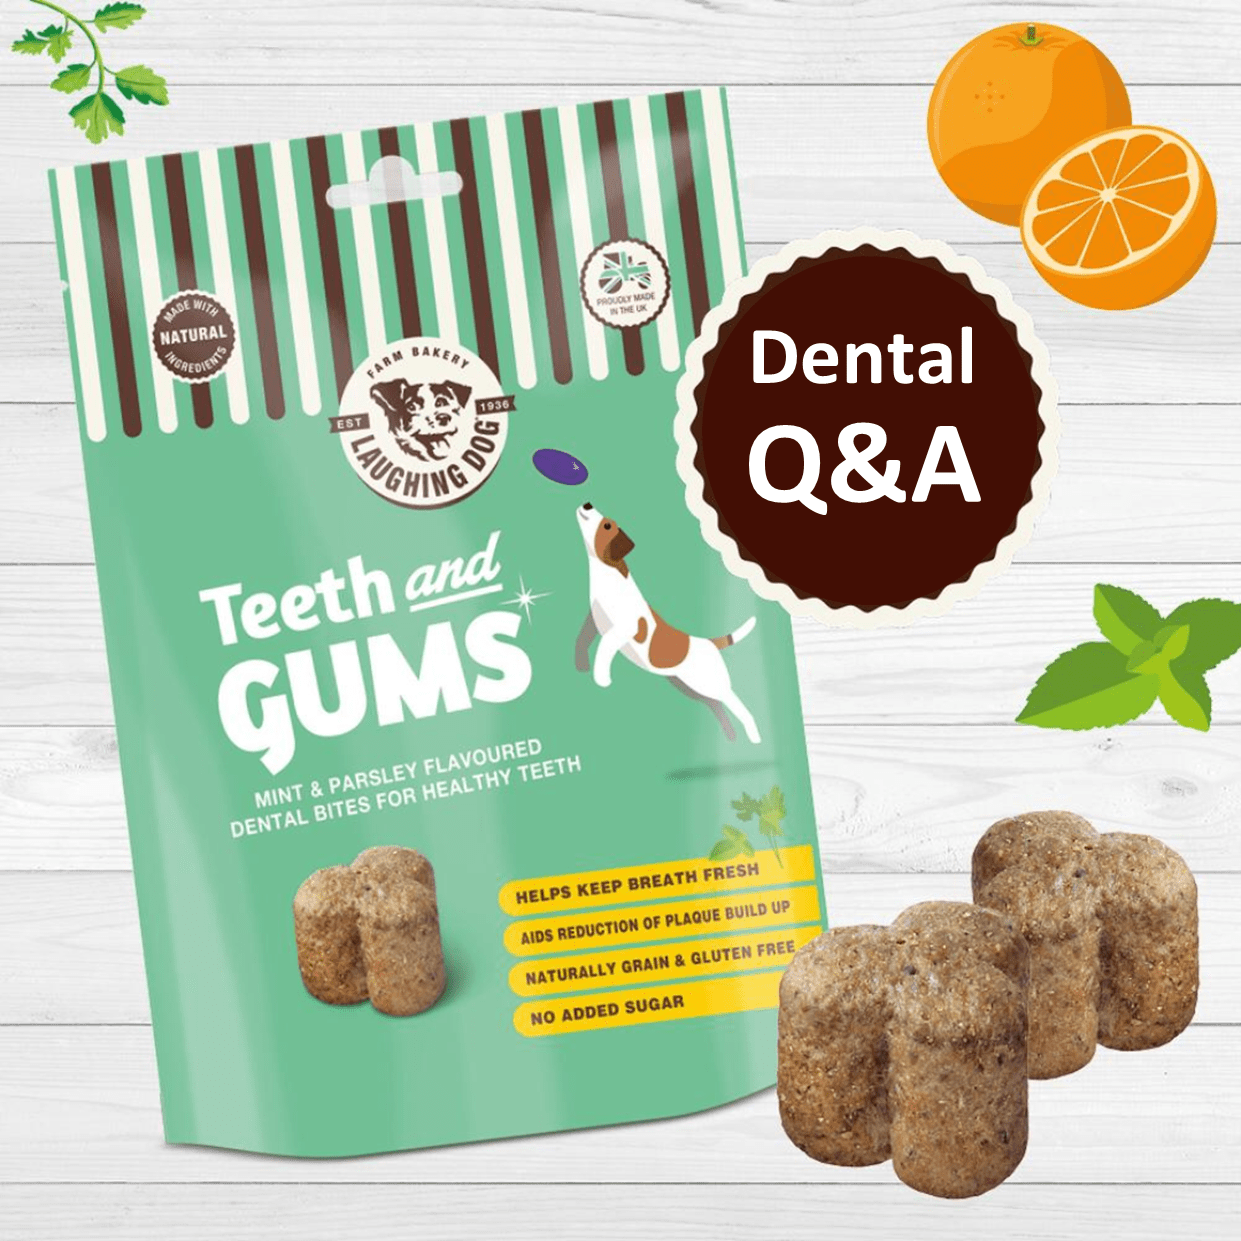 Dental Q&A with Laughing Dog's Head of New Product Development Image   Laughing Dog Food